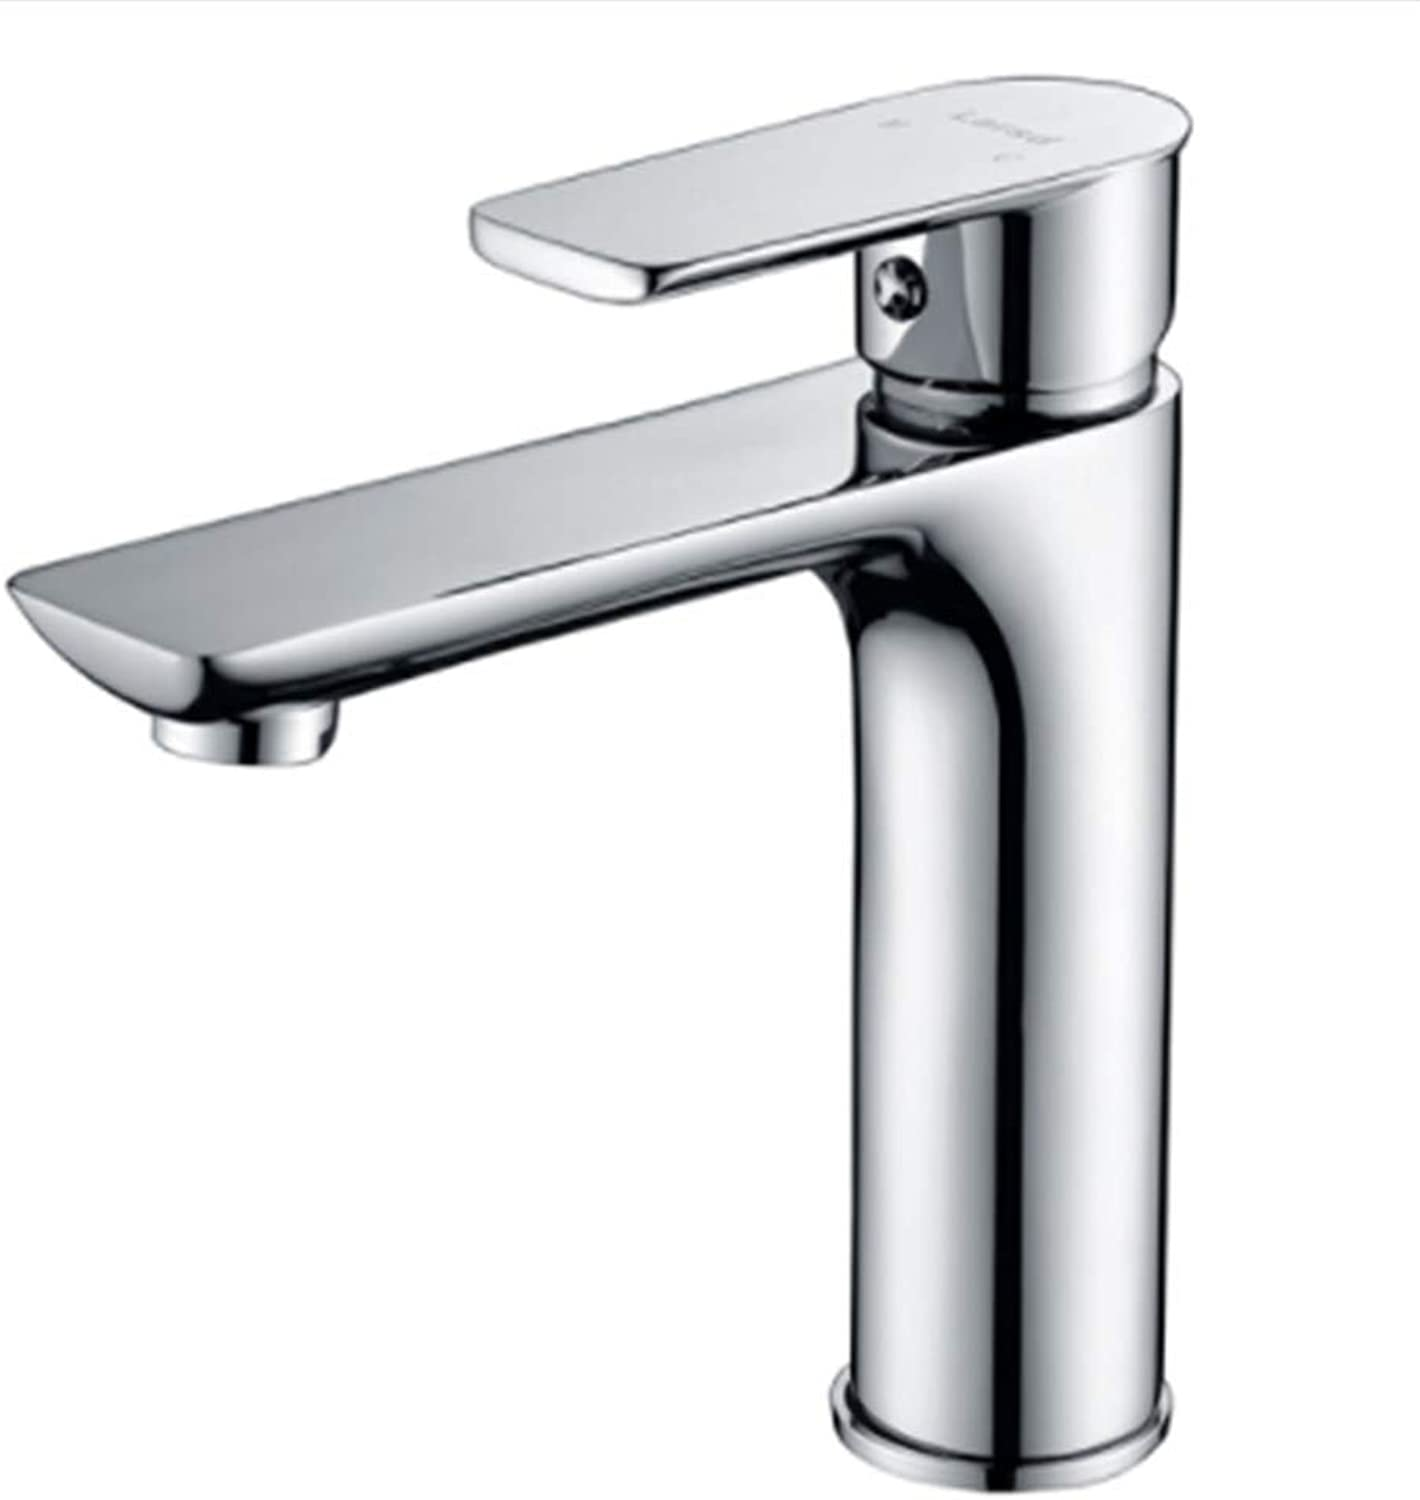 Kitchen Faucet Tapstainless Steelkitchen Faucet Prowashbasin Faucet, All Copper Faucet, Hot and Cold Basin, Bathroom Washbasin Faucet.